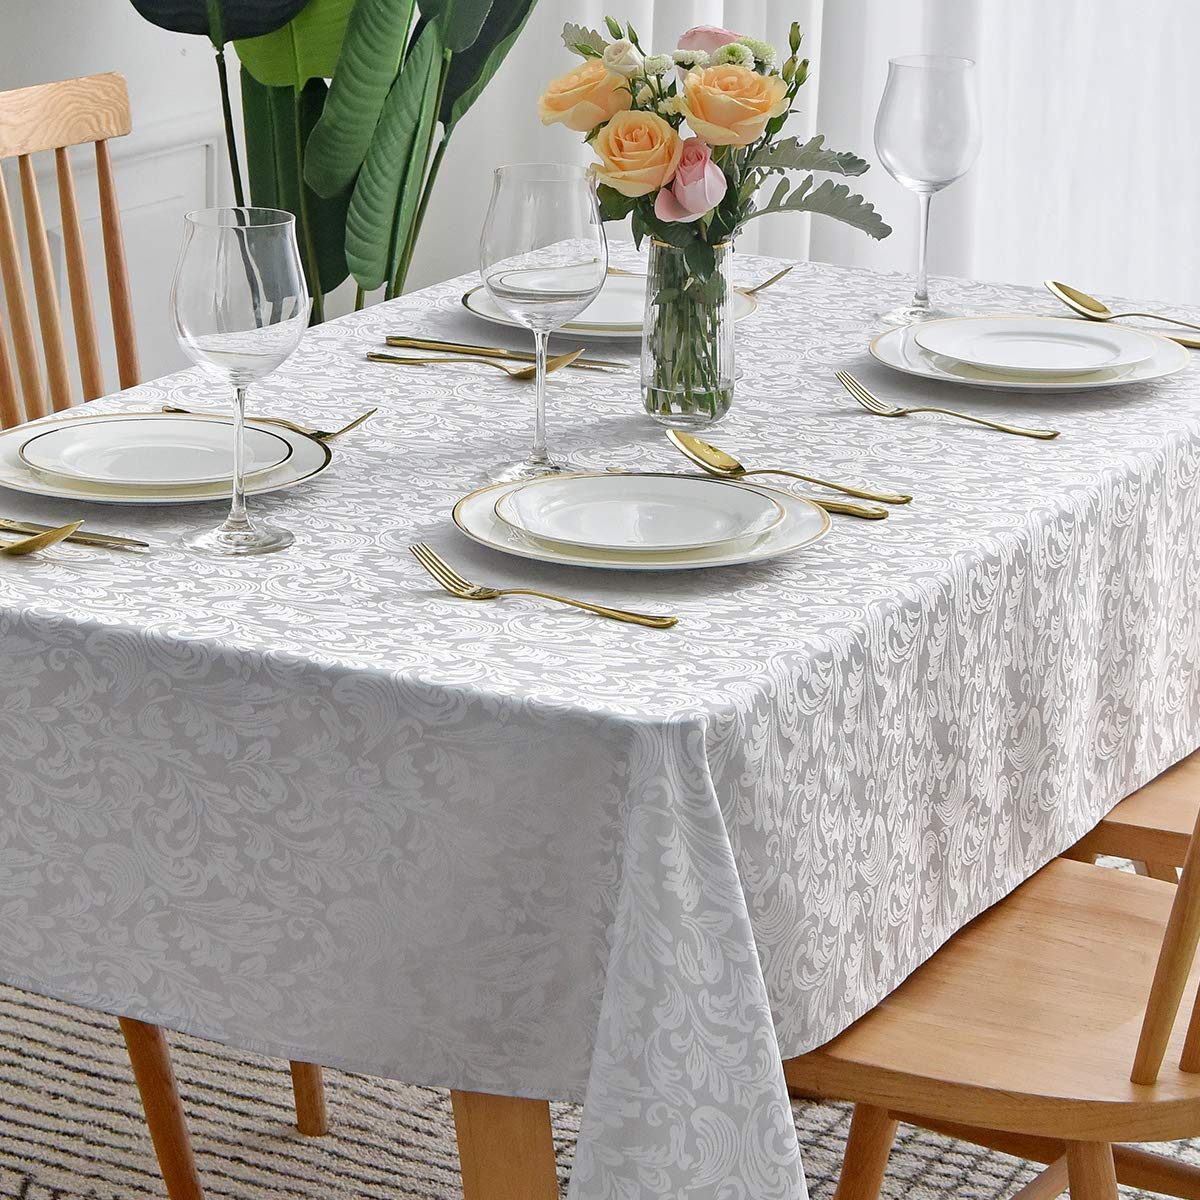 maxmill Square Table Cloth Damask Pattern Spillproof Wrinkle Resistant Oil Proof Heavy Weight Soft Tablecloth for Kitchen Dinning Tabletop Outdoor Picnic Square 52 x 52 Inch Silver